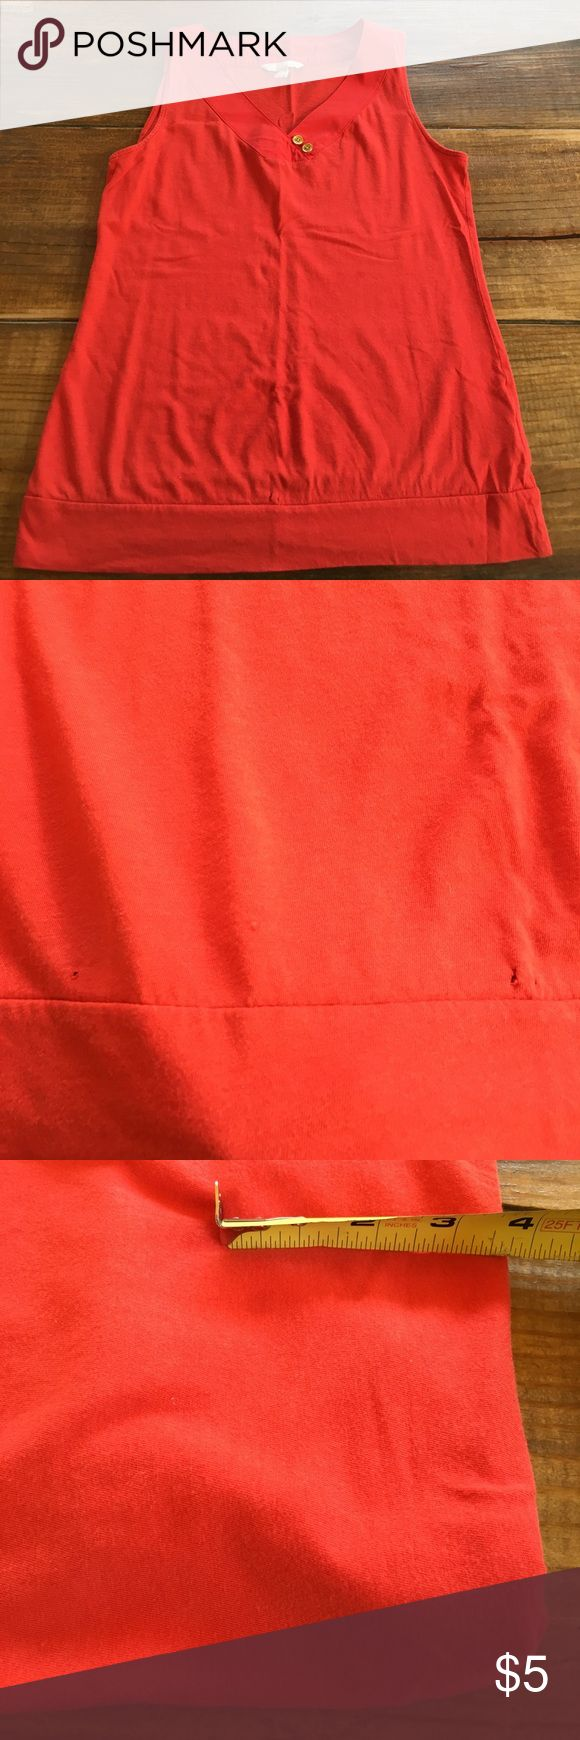 📌Clearance📌 Banana Republic Orange Top Free with purchase of any item in my closet. 1 free item per order/bundle or purchase for the price marked. There are small holes on the bottom & a small stain as shown. Could easily be sewn up. I did not know of stain previously so it could be treated with stain remover/dawn dish detergent seems to work well too. Banana Republic Tops Tank Tops